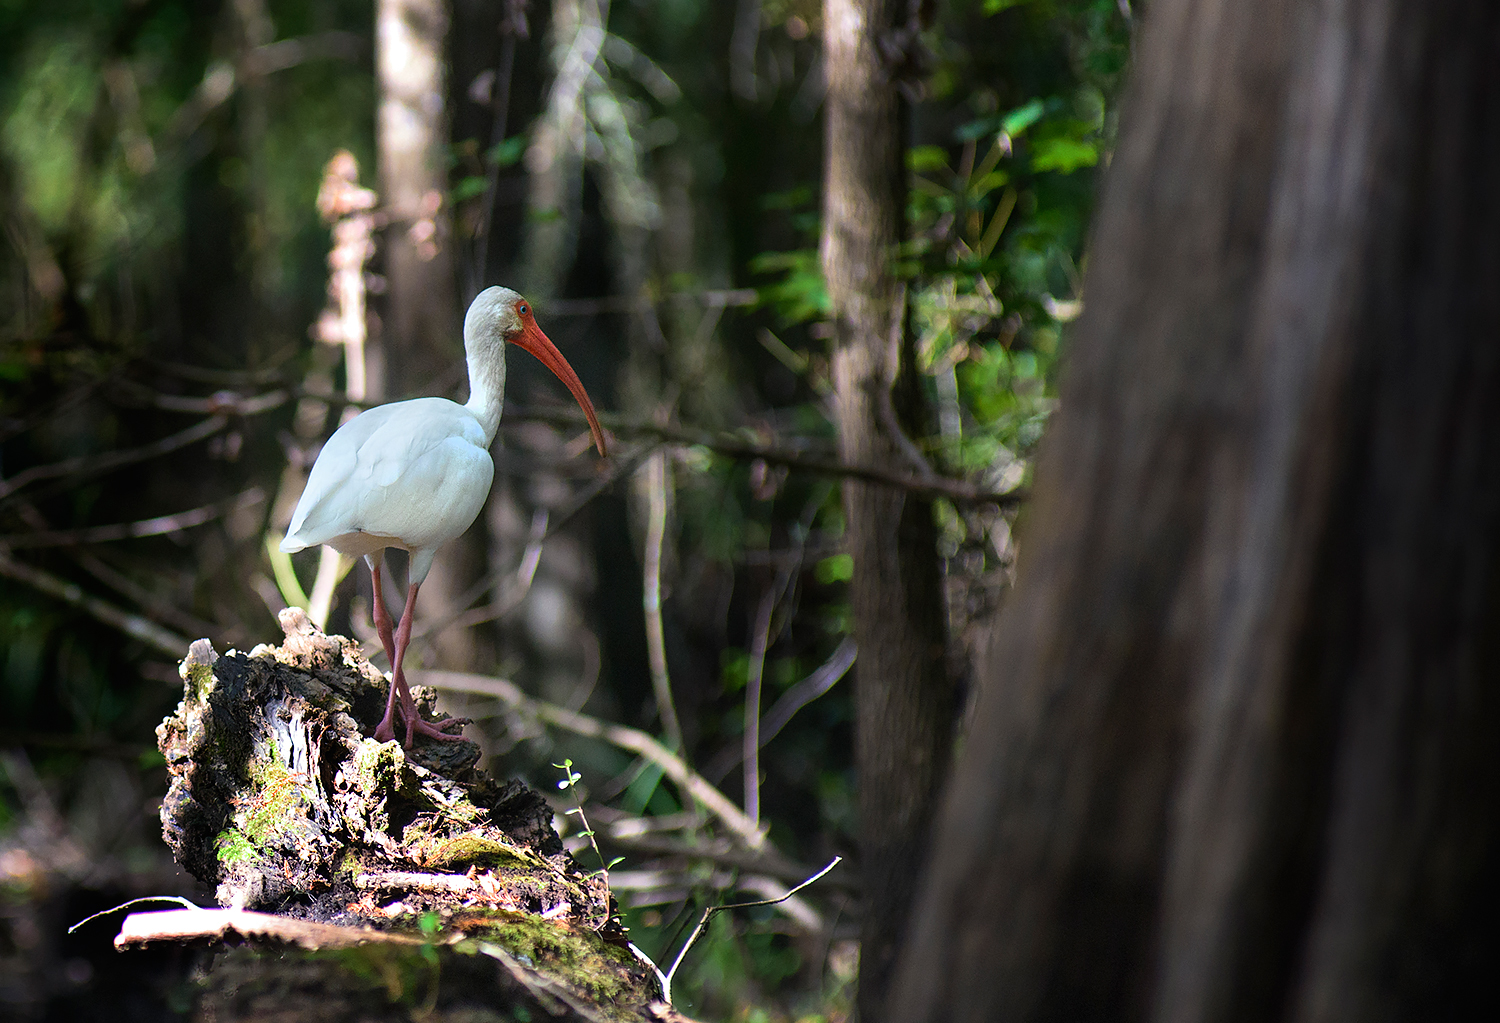 Ibis in the swamp